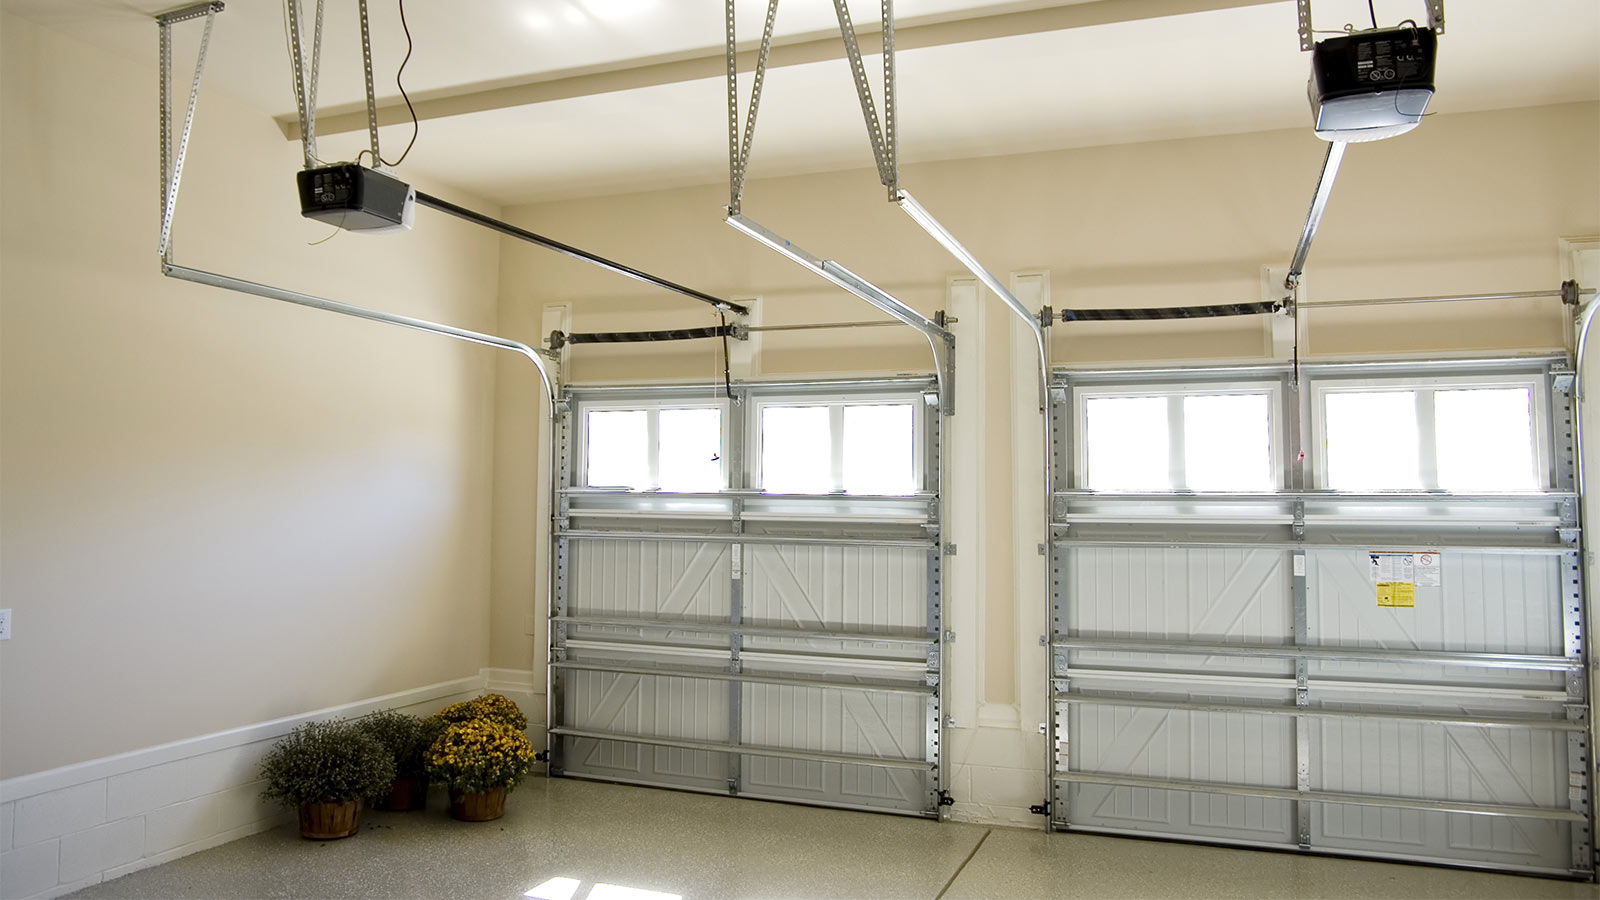 Sectional Garage Doors from Roller Shutters Surrey suppliers.